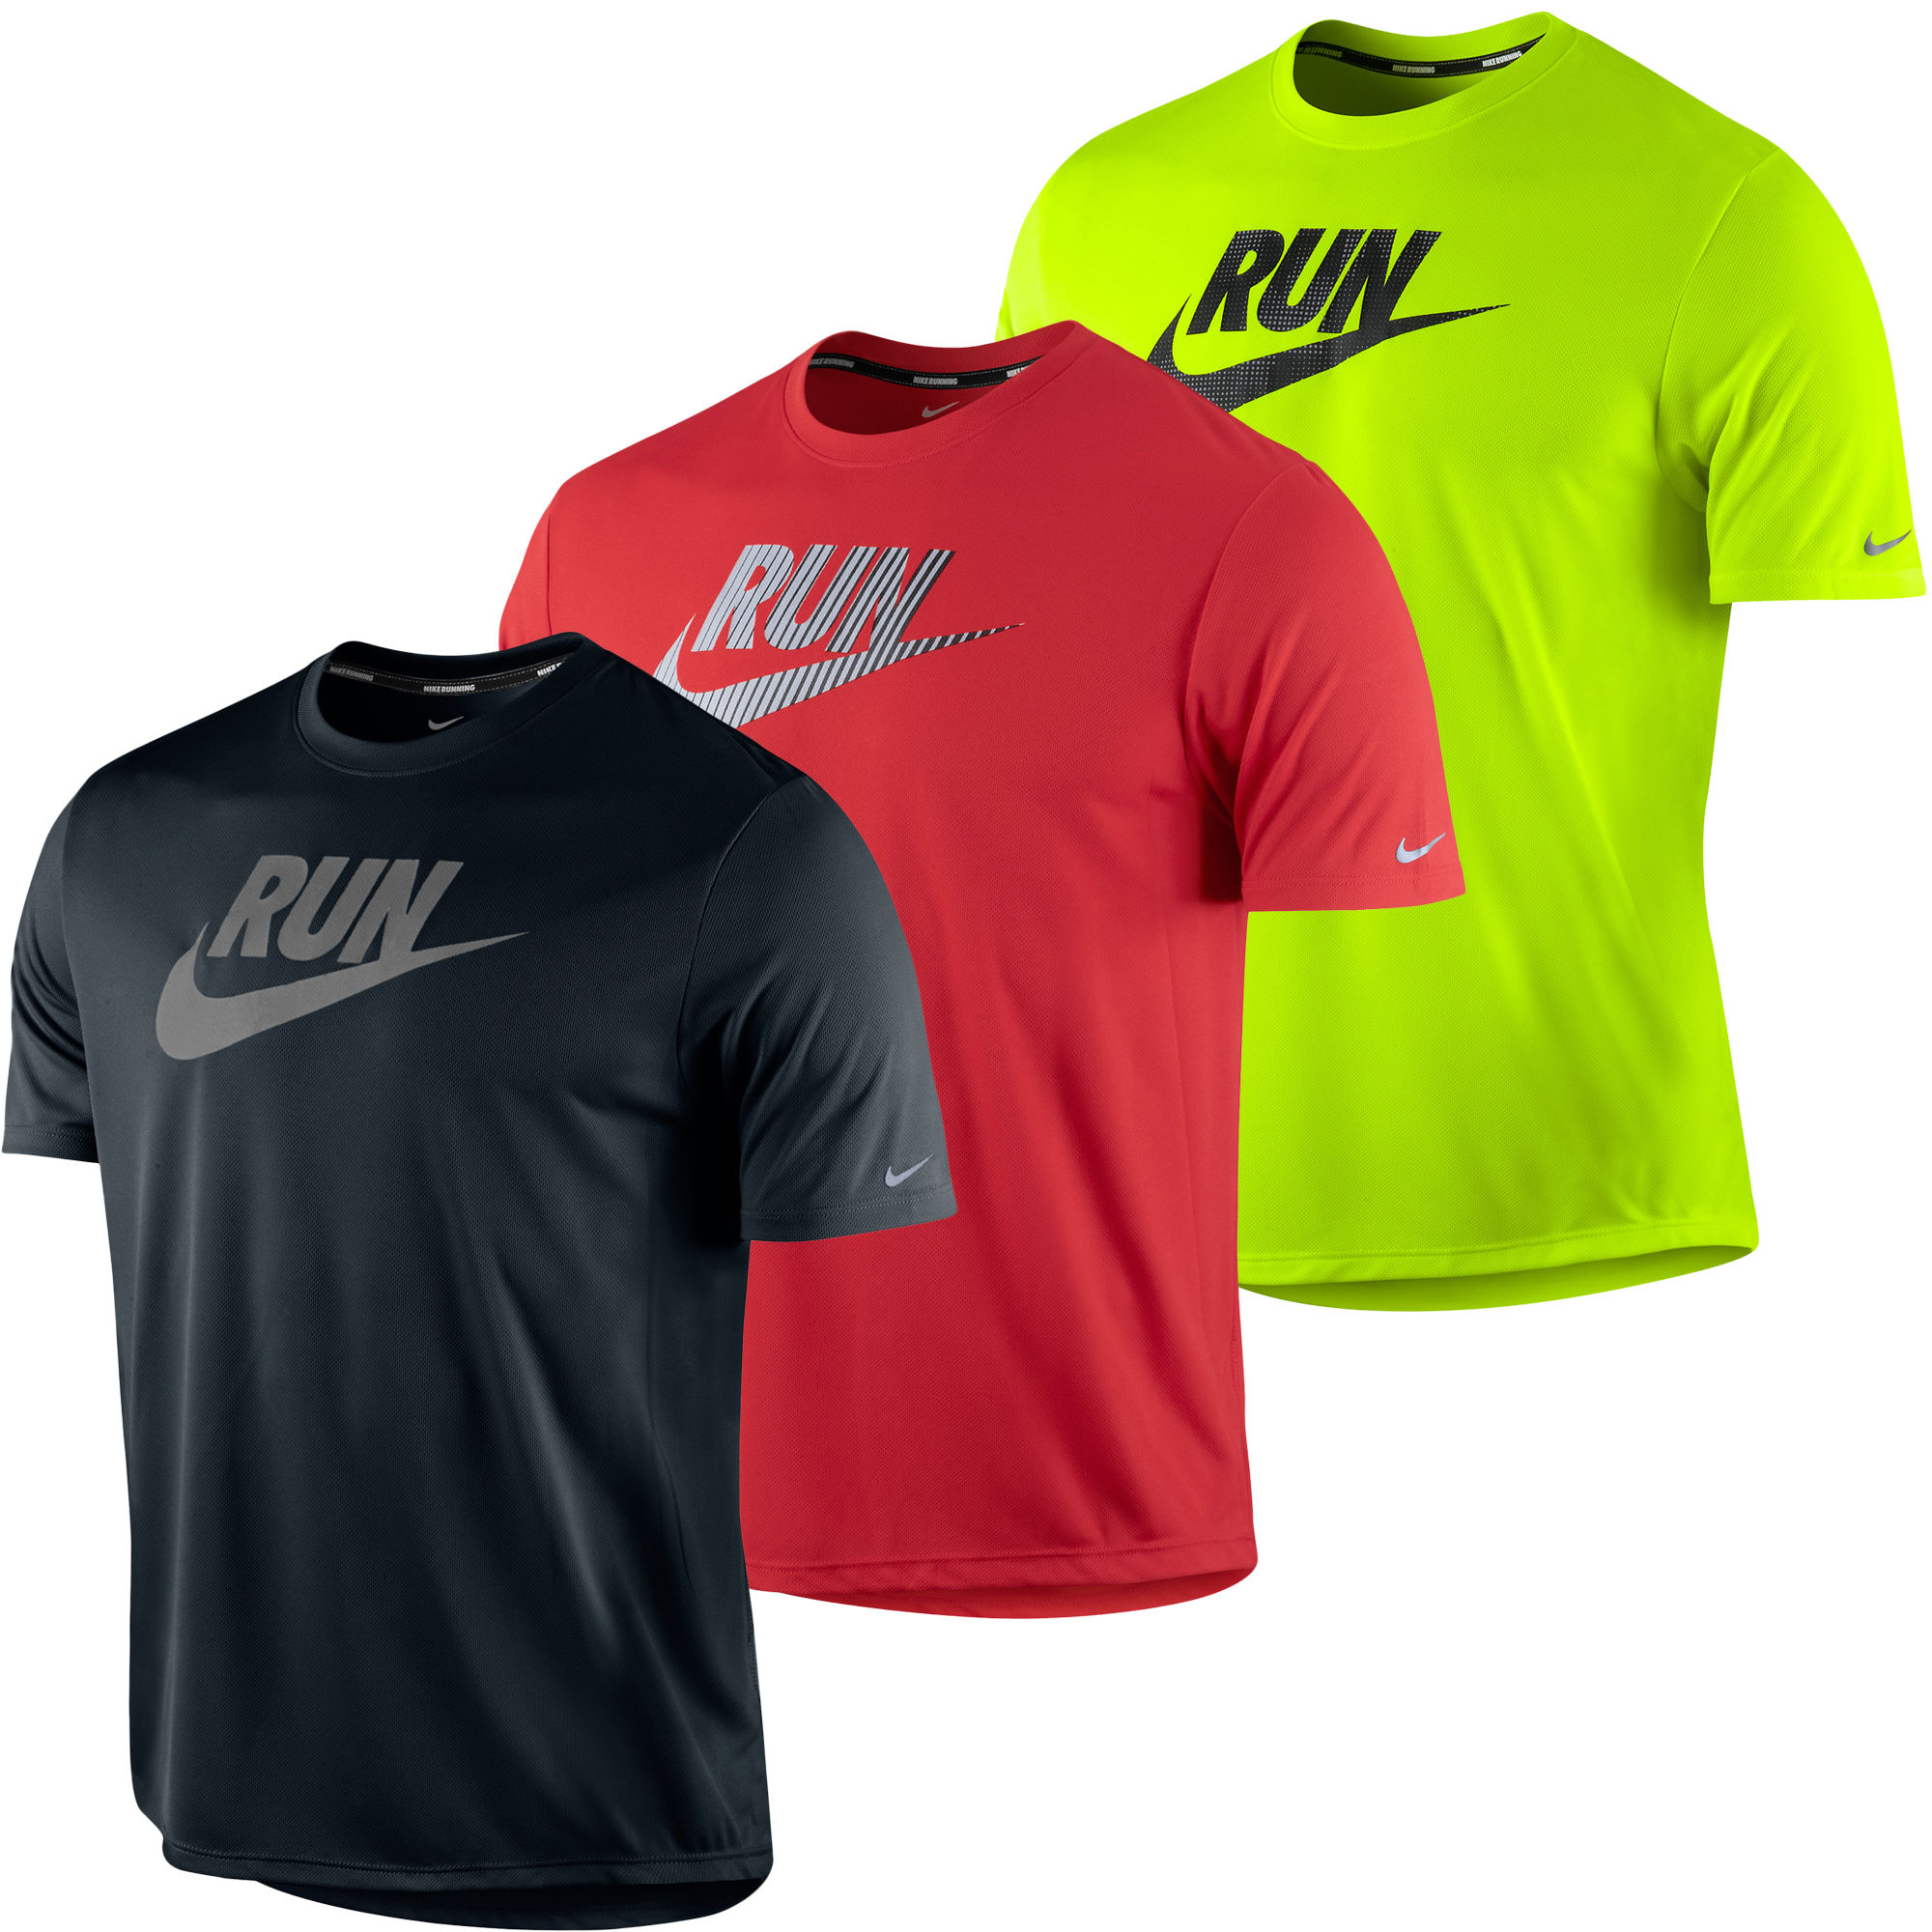 Nike tee shirt running for Nike swoosh logo t shirt